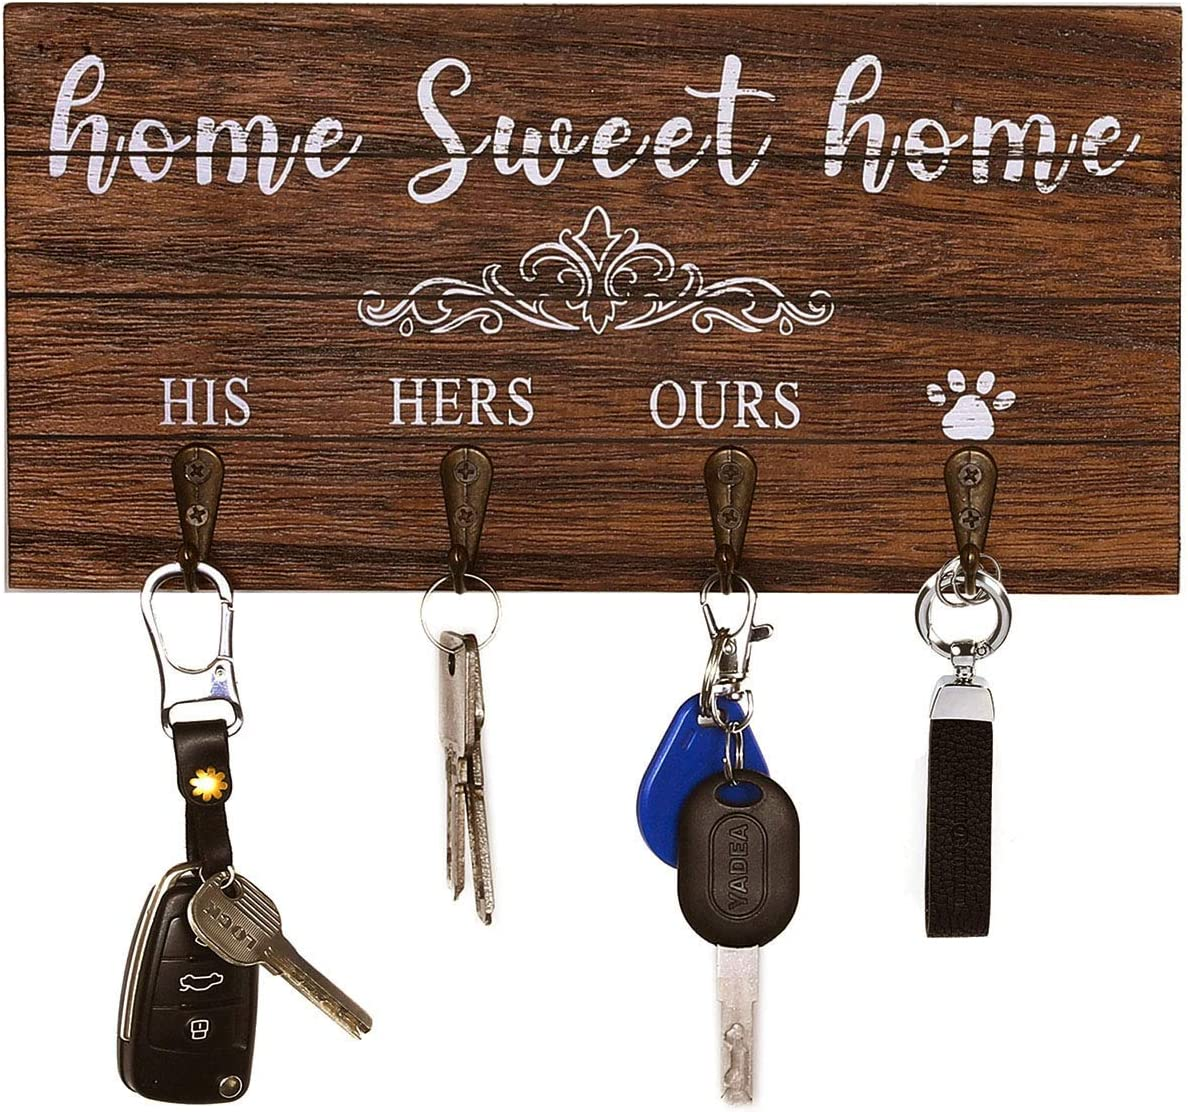 Home Sweet Home Key Holder for Wall Decorative with 4 Key Hooks, Rustic Home Decor Key Hangers for Wall Entryway, Key Rack with His Her Ours Paws Signs